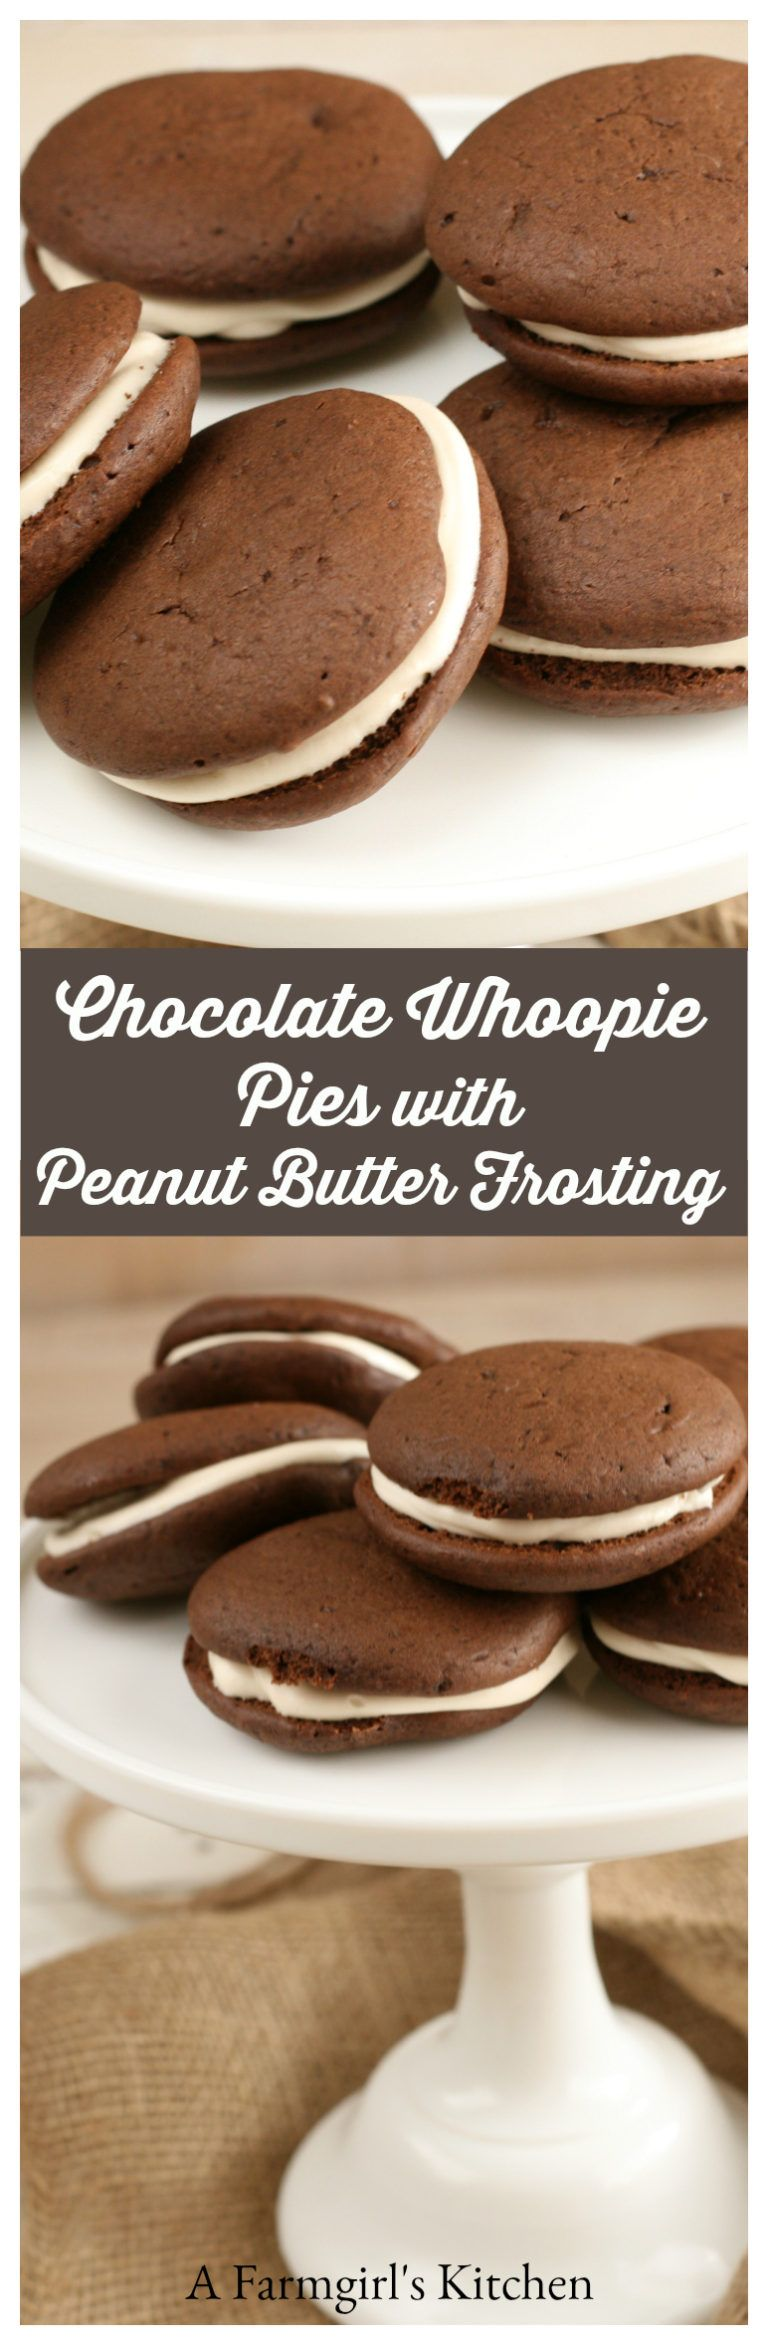 Make these delicious homemade Chocolate Whoopie Pies with